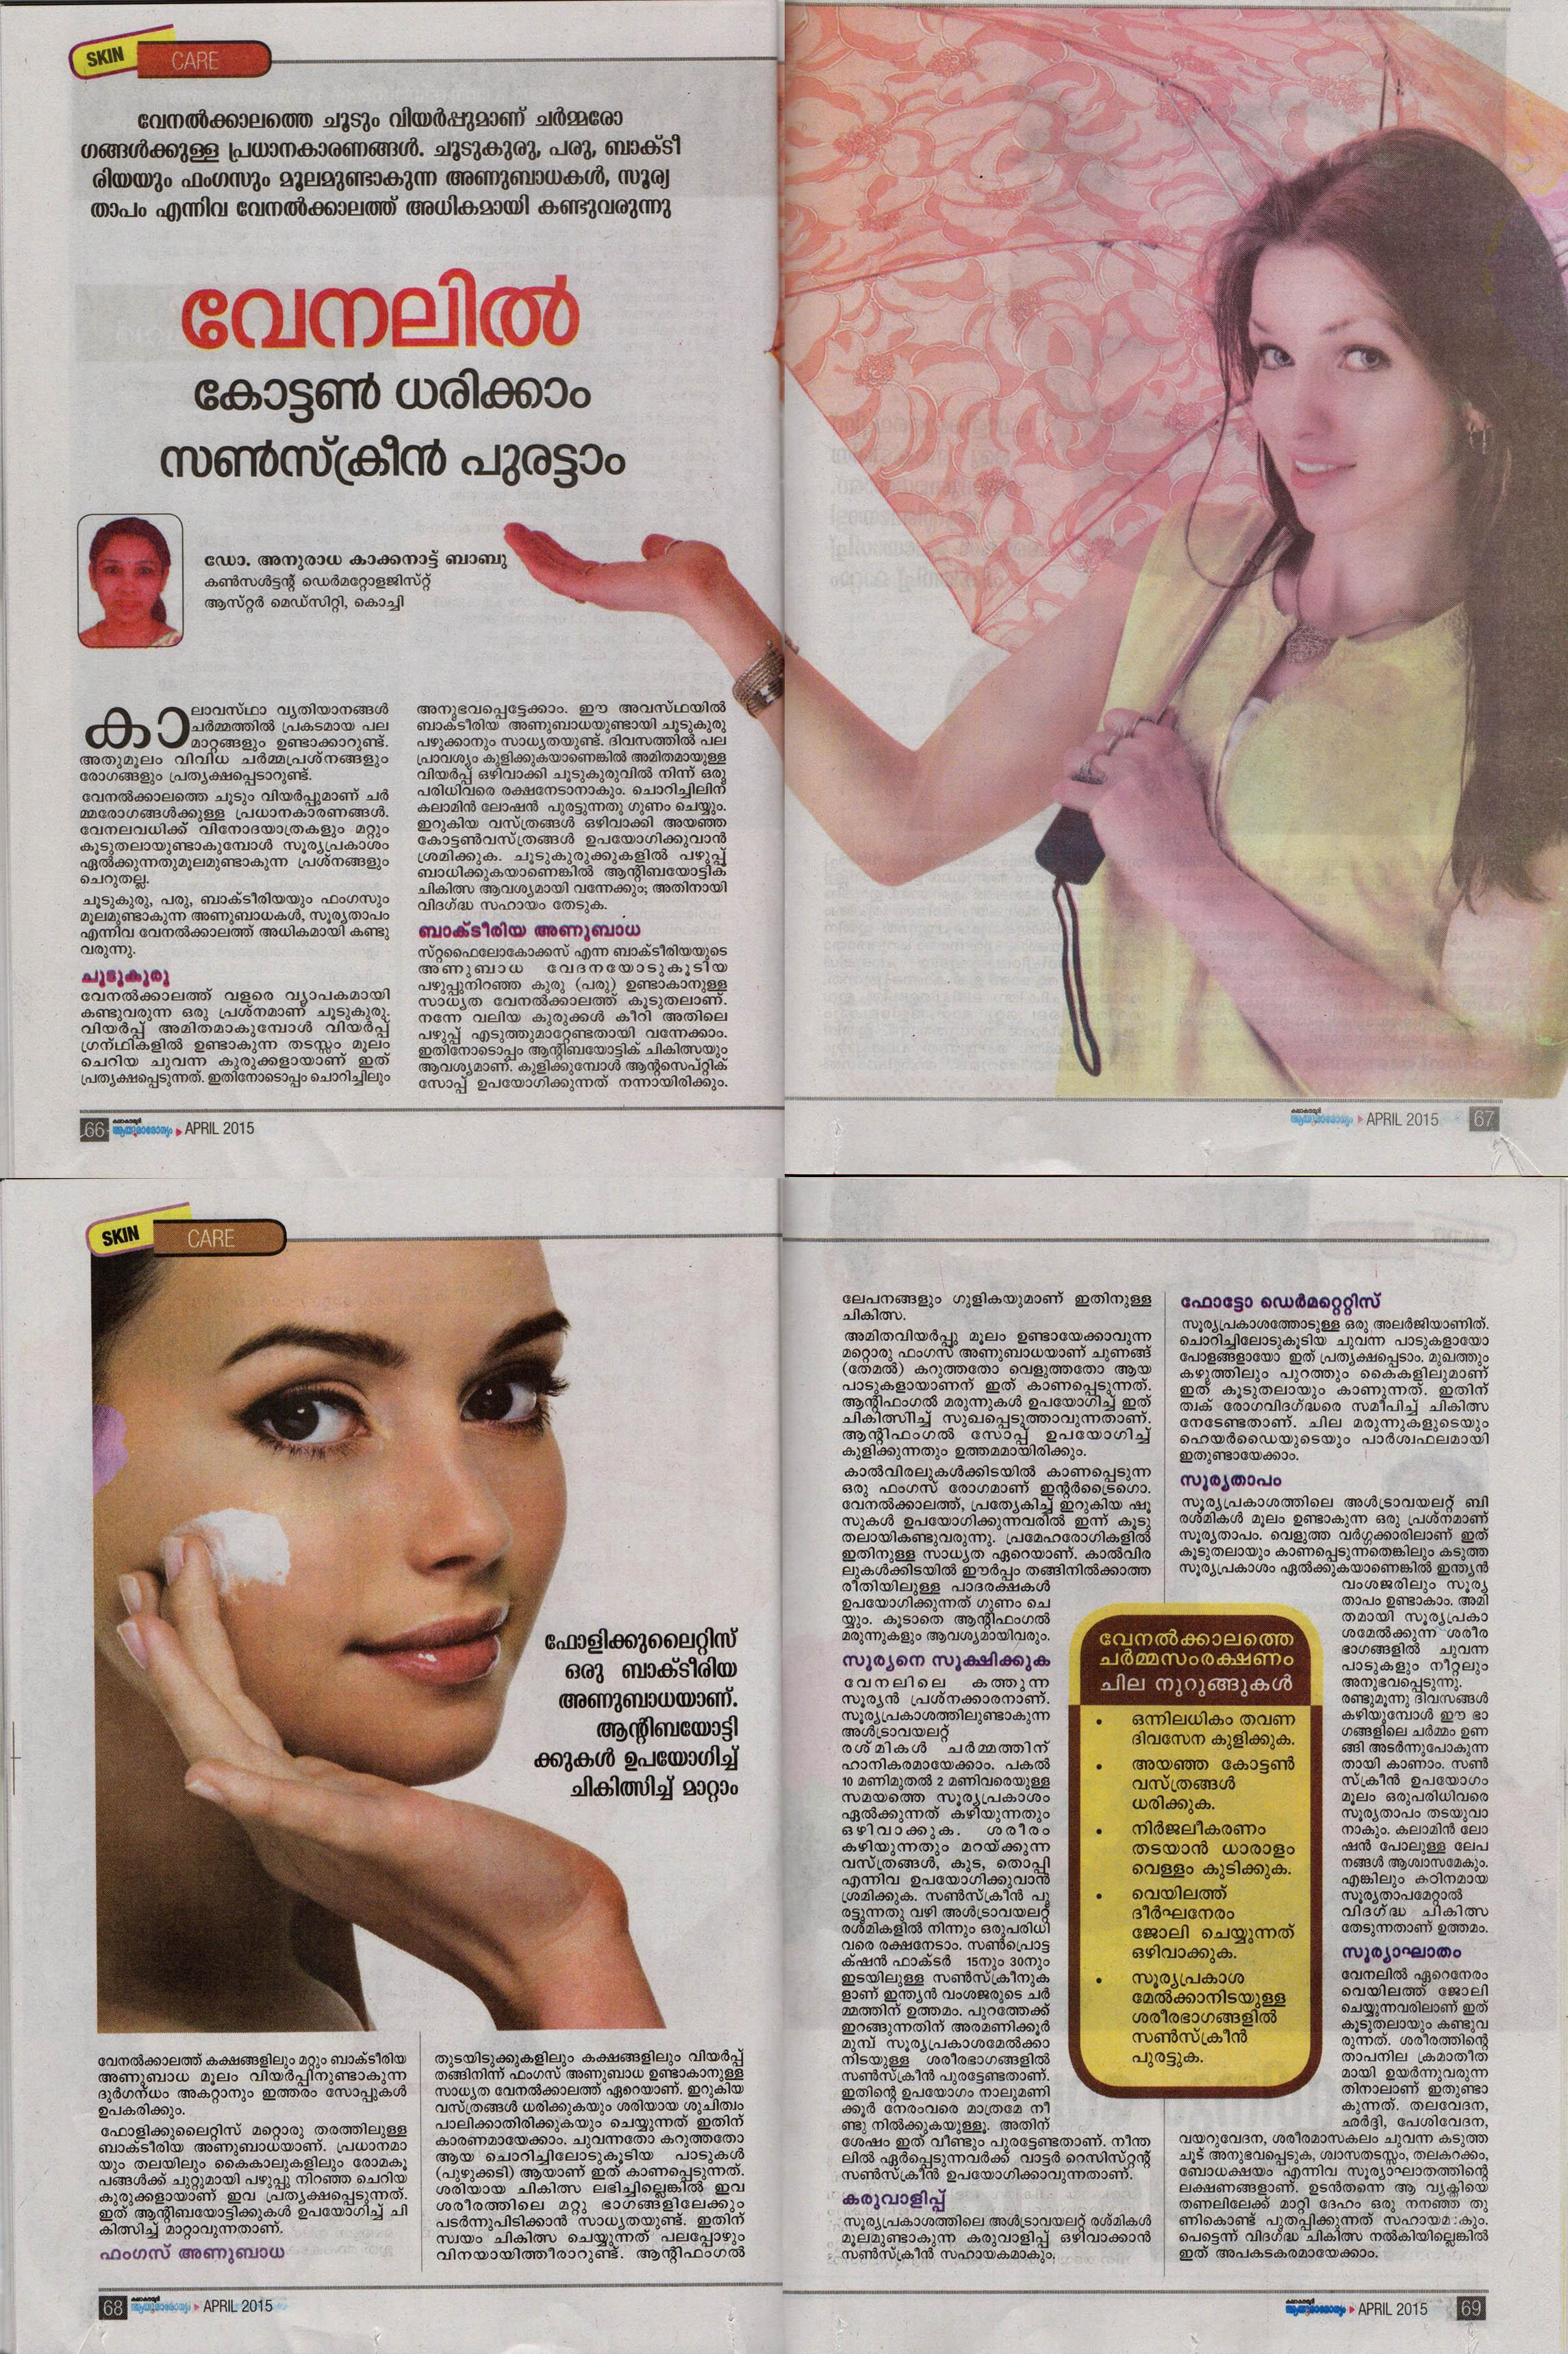 Ayurarogyam_-_Dr_Anuradha__Dermatology__-_April_2015_issue